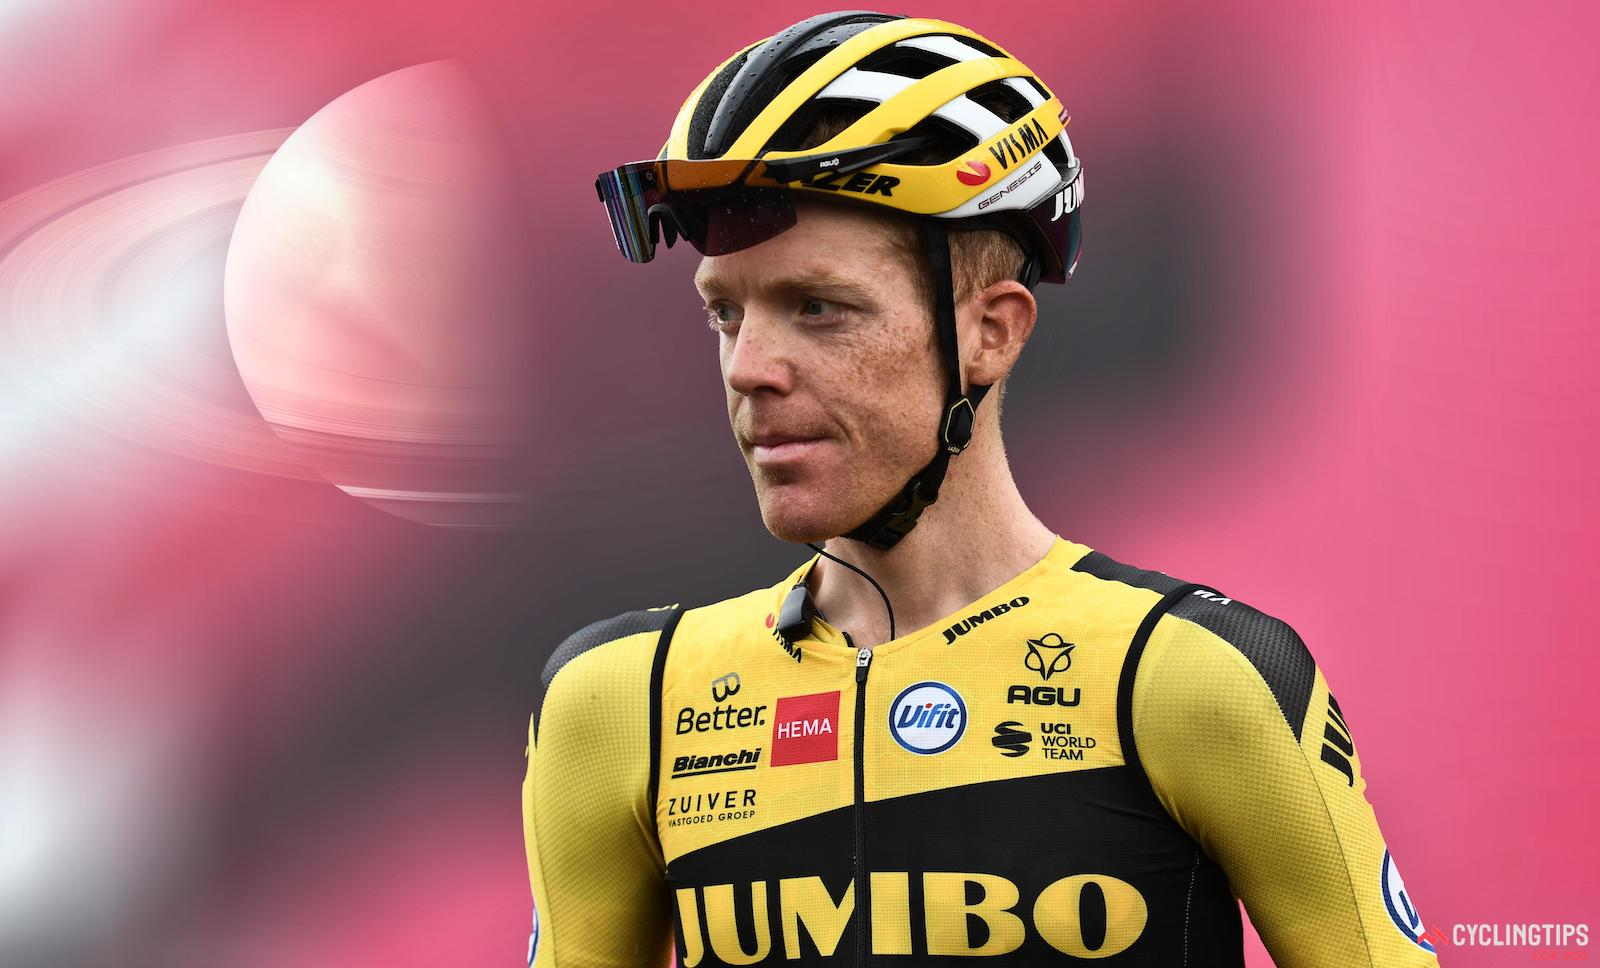 All of Mitchelton-Scott, Kruijswijk, Matthews out of the Giro with COVID-19